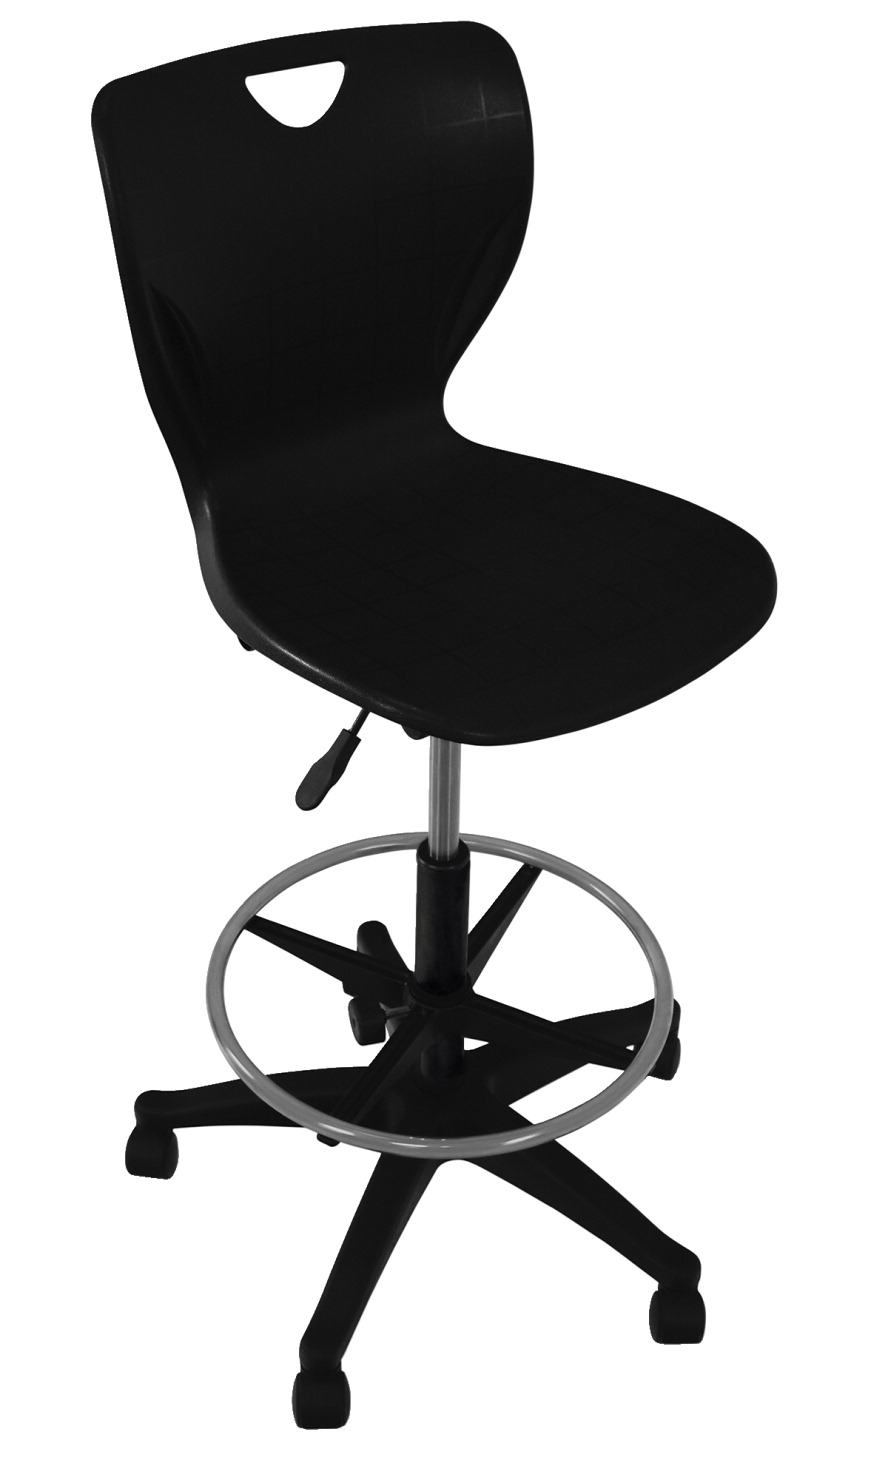 Classroom Select Contemporary Pneumatic Lift Chair with Adjustable Foot Ring, A Shell, Various Options